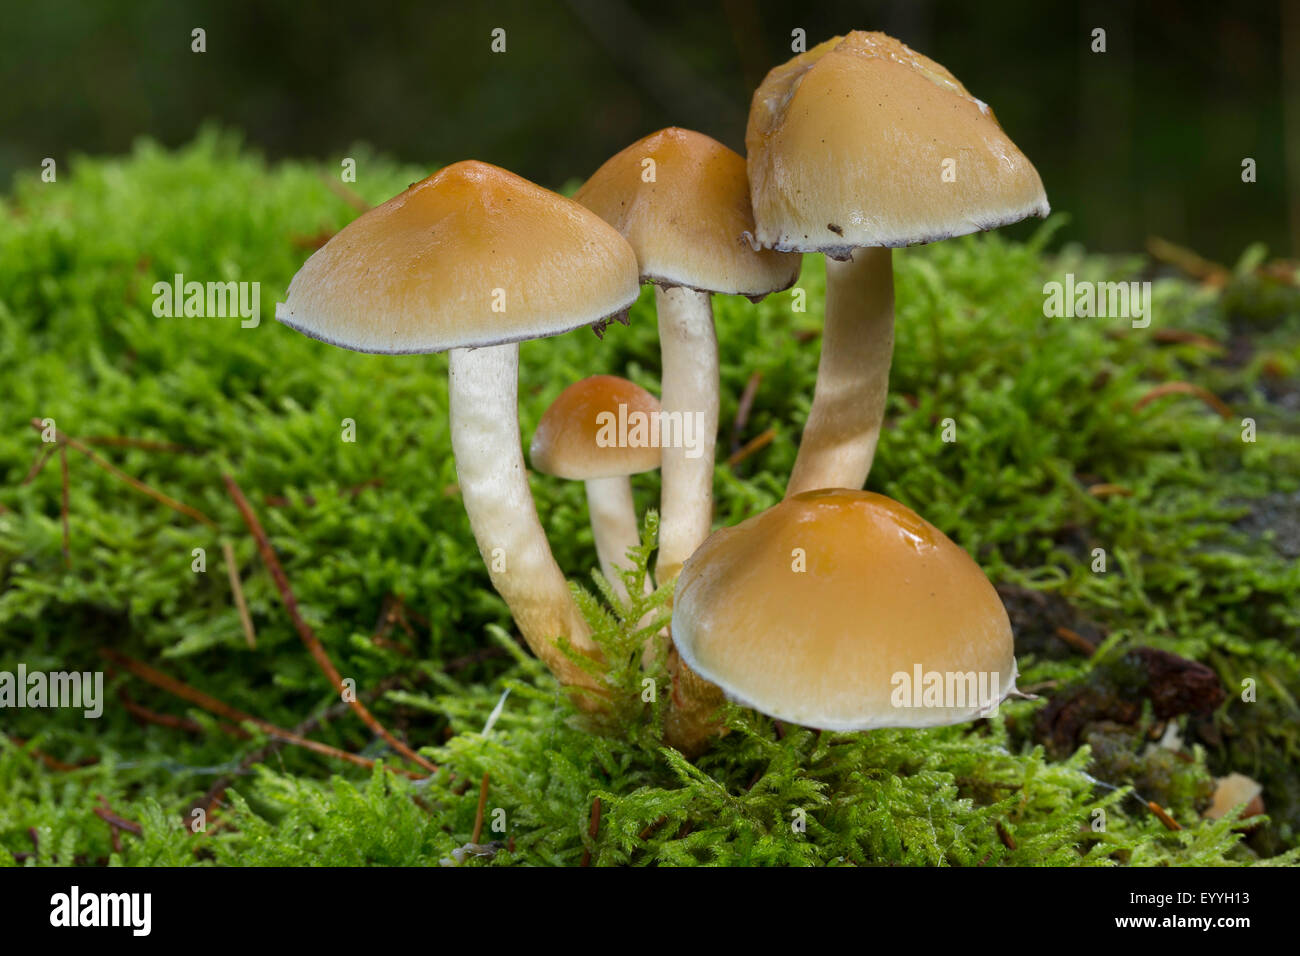 Conifer tuft (Hypholoma capnoides), in moss, Germany - Stock Image